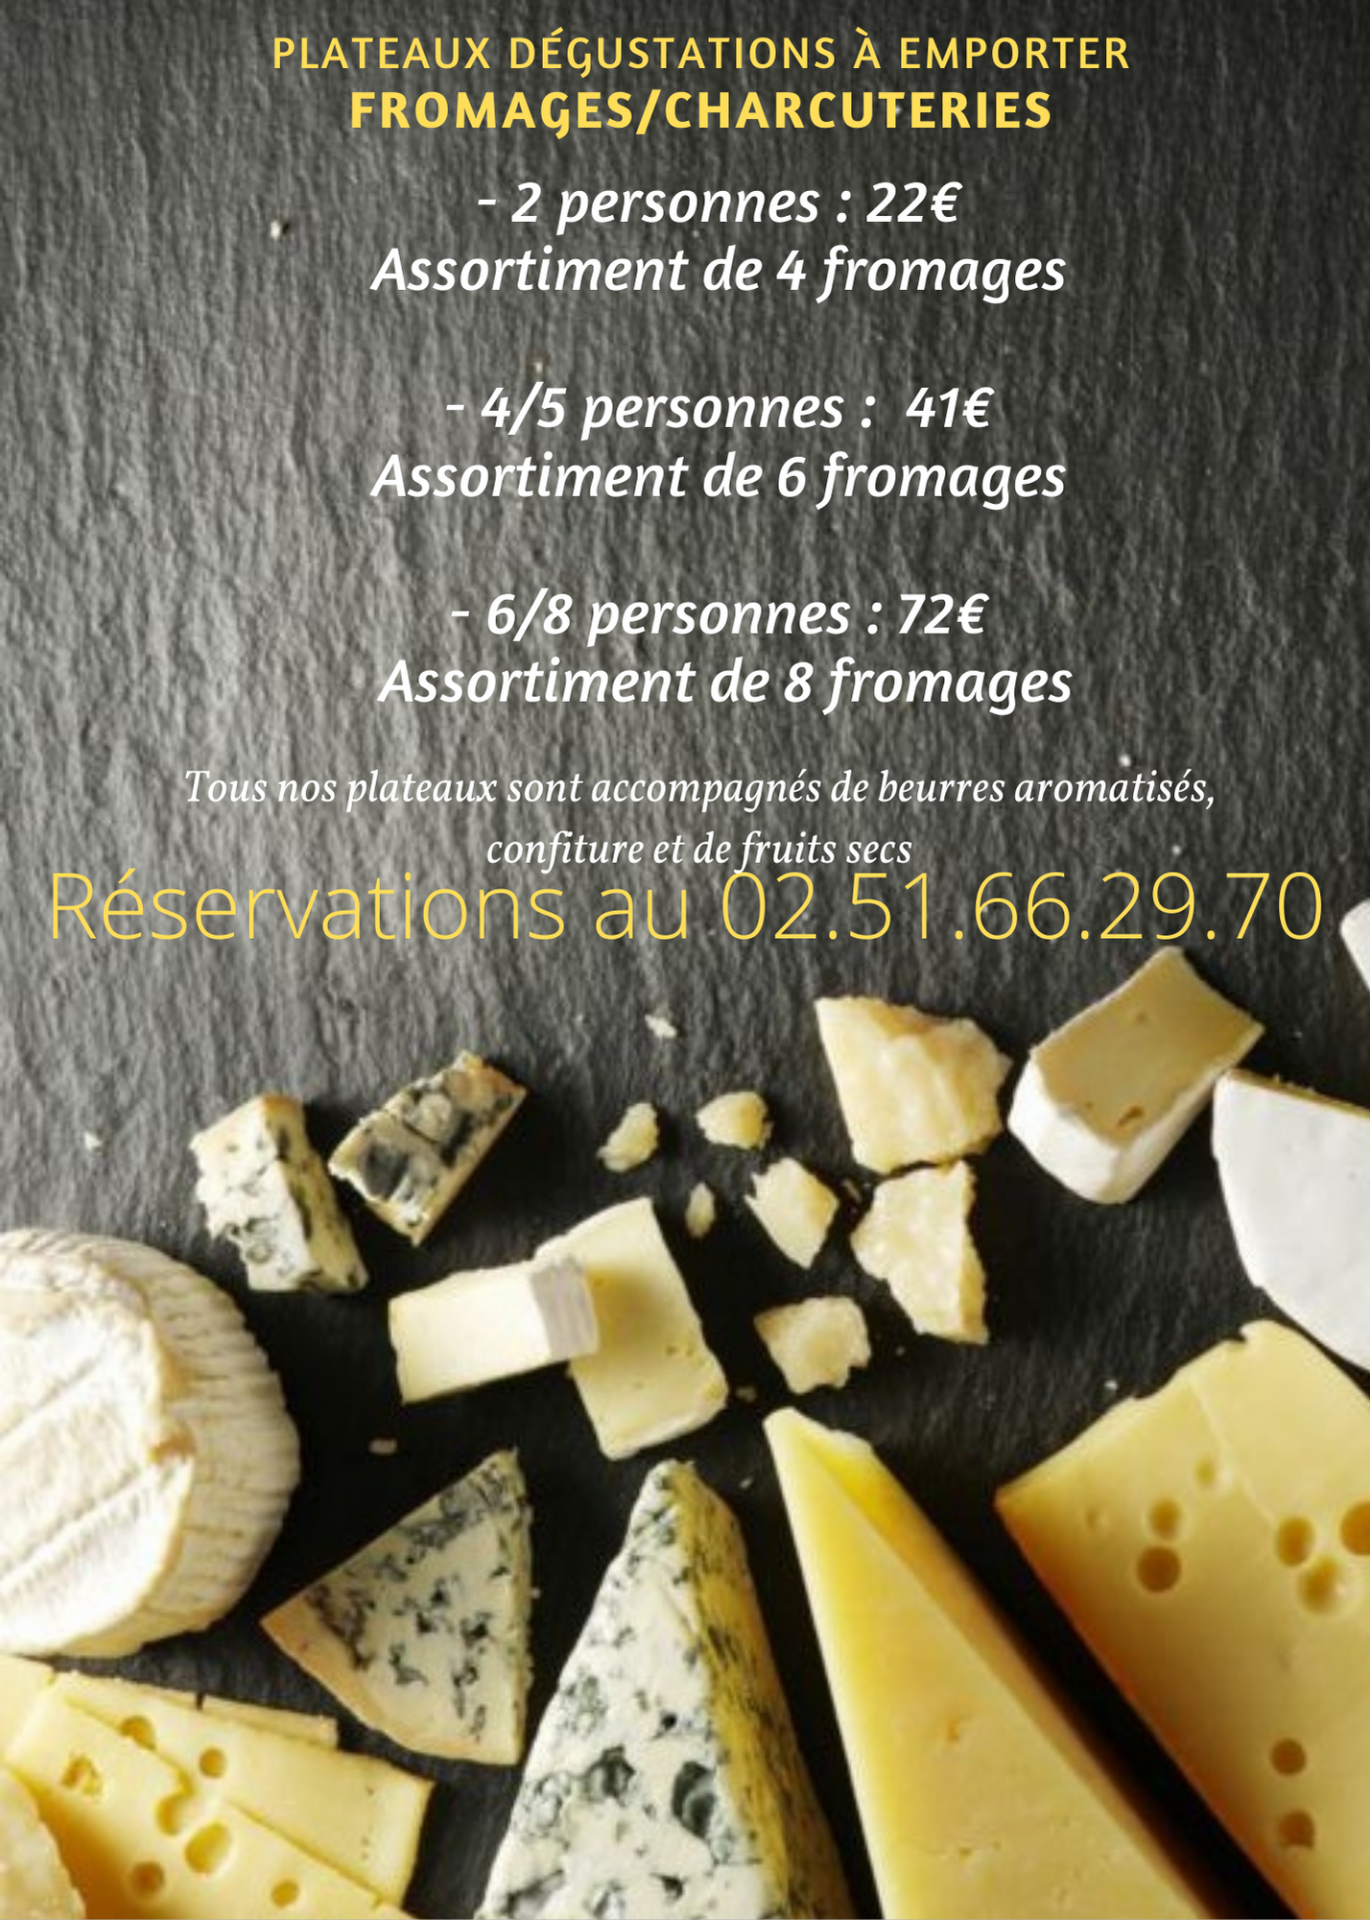 Plateaux a emporter fromages charcuteries 1